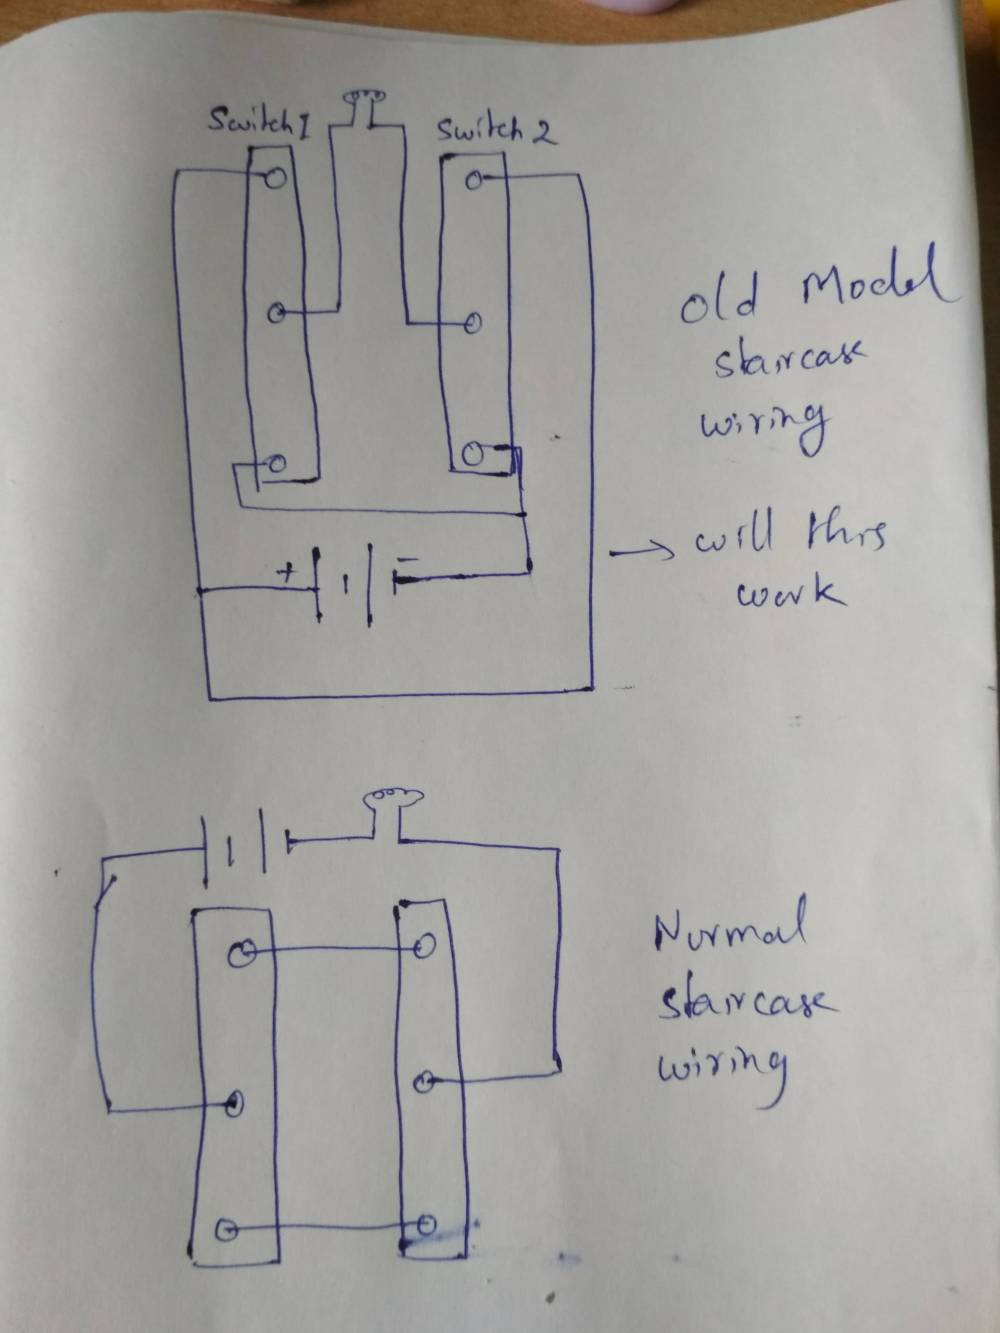 medium resolution of old model and normal model staircase wiring